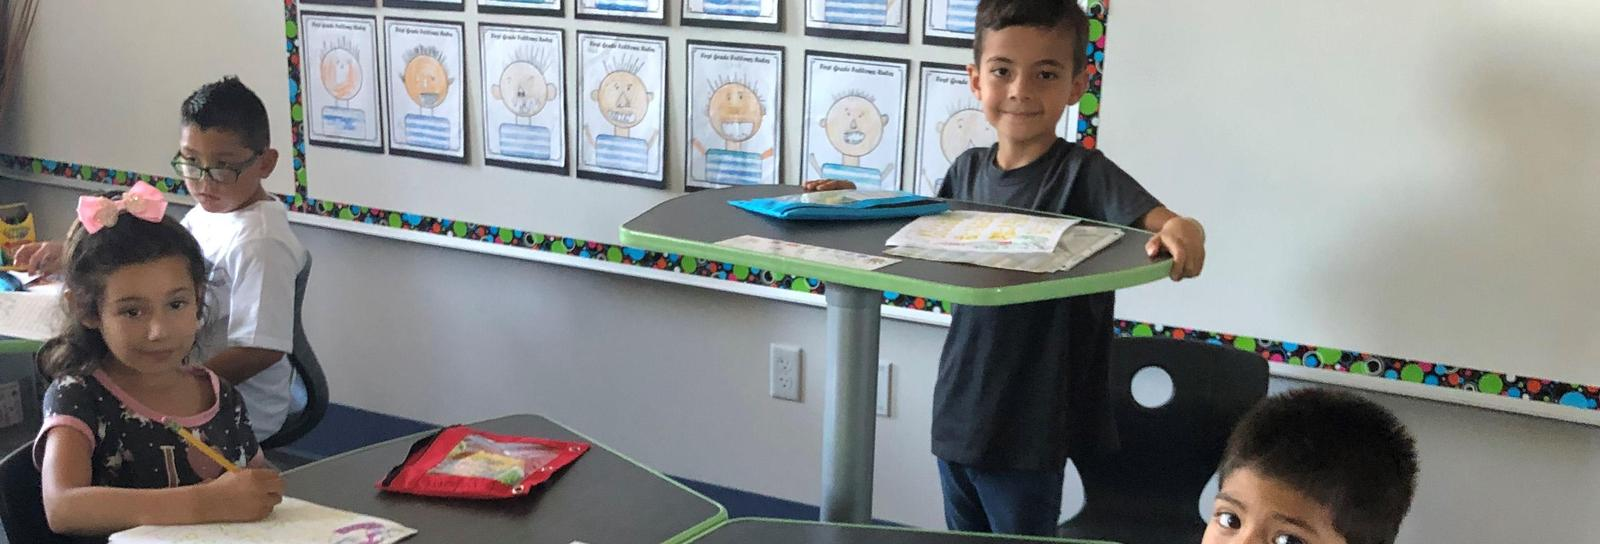 A Roosevelt student chooses to complete his classwork standing up. Adjustable student desks offer our scholars alternatives to traditional learning.